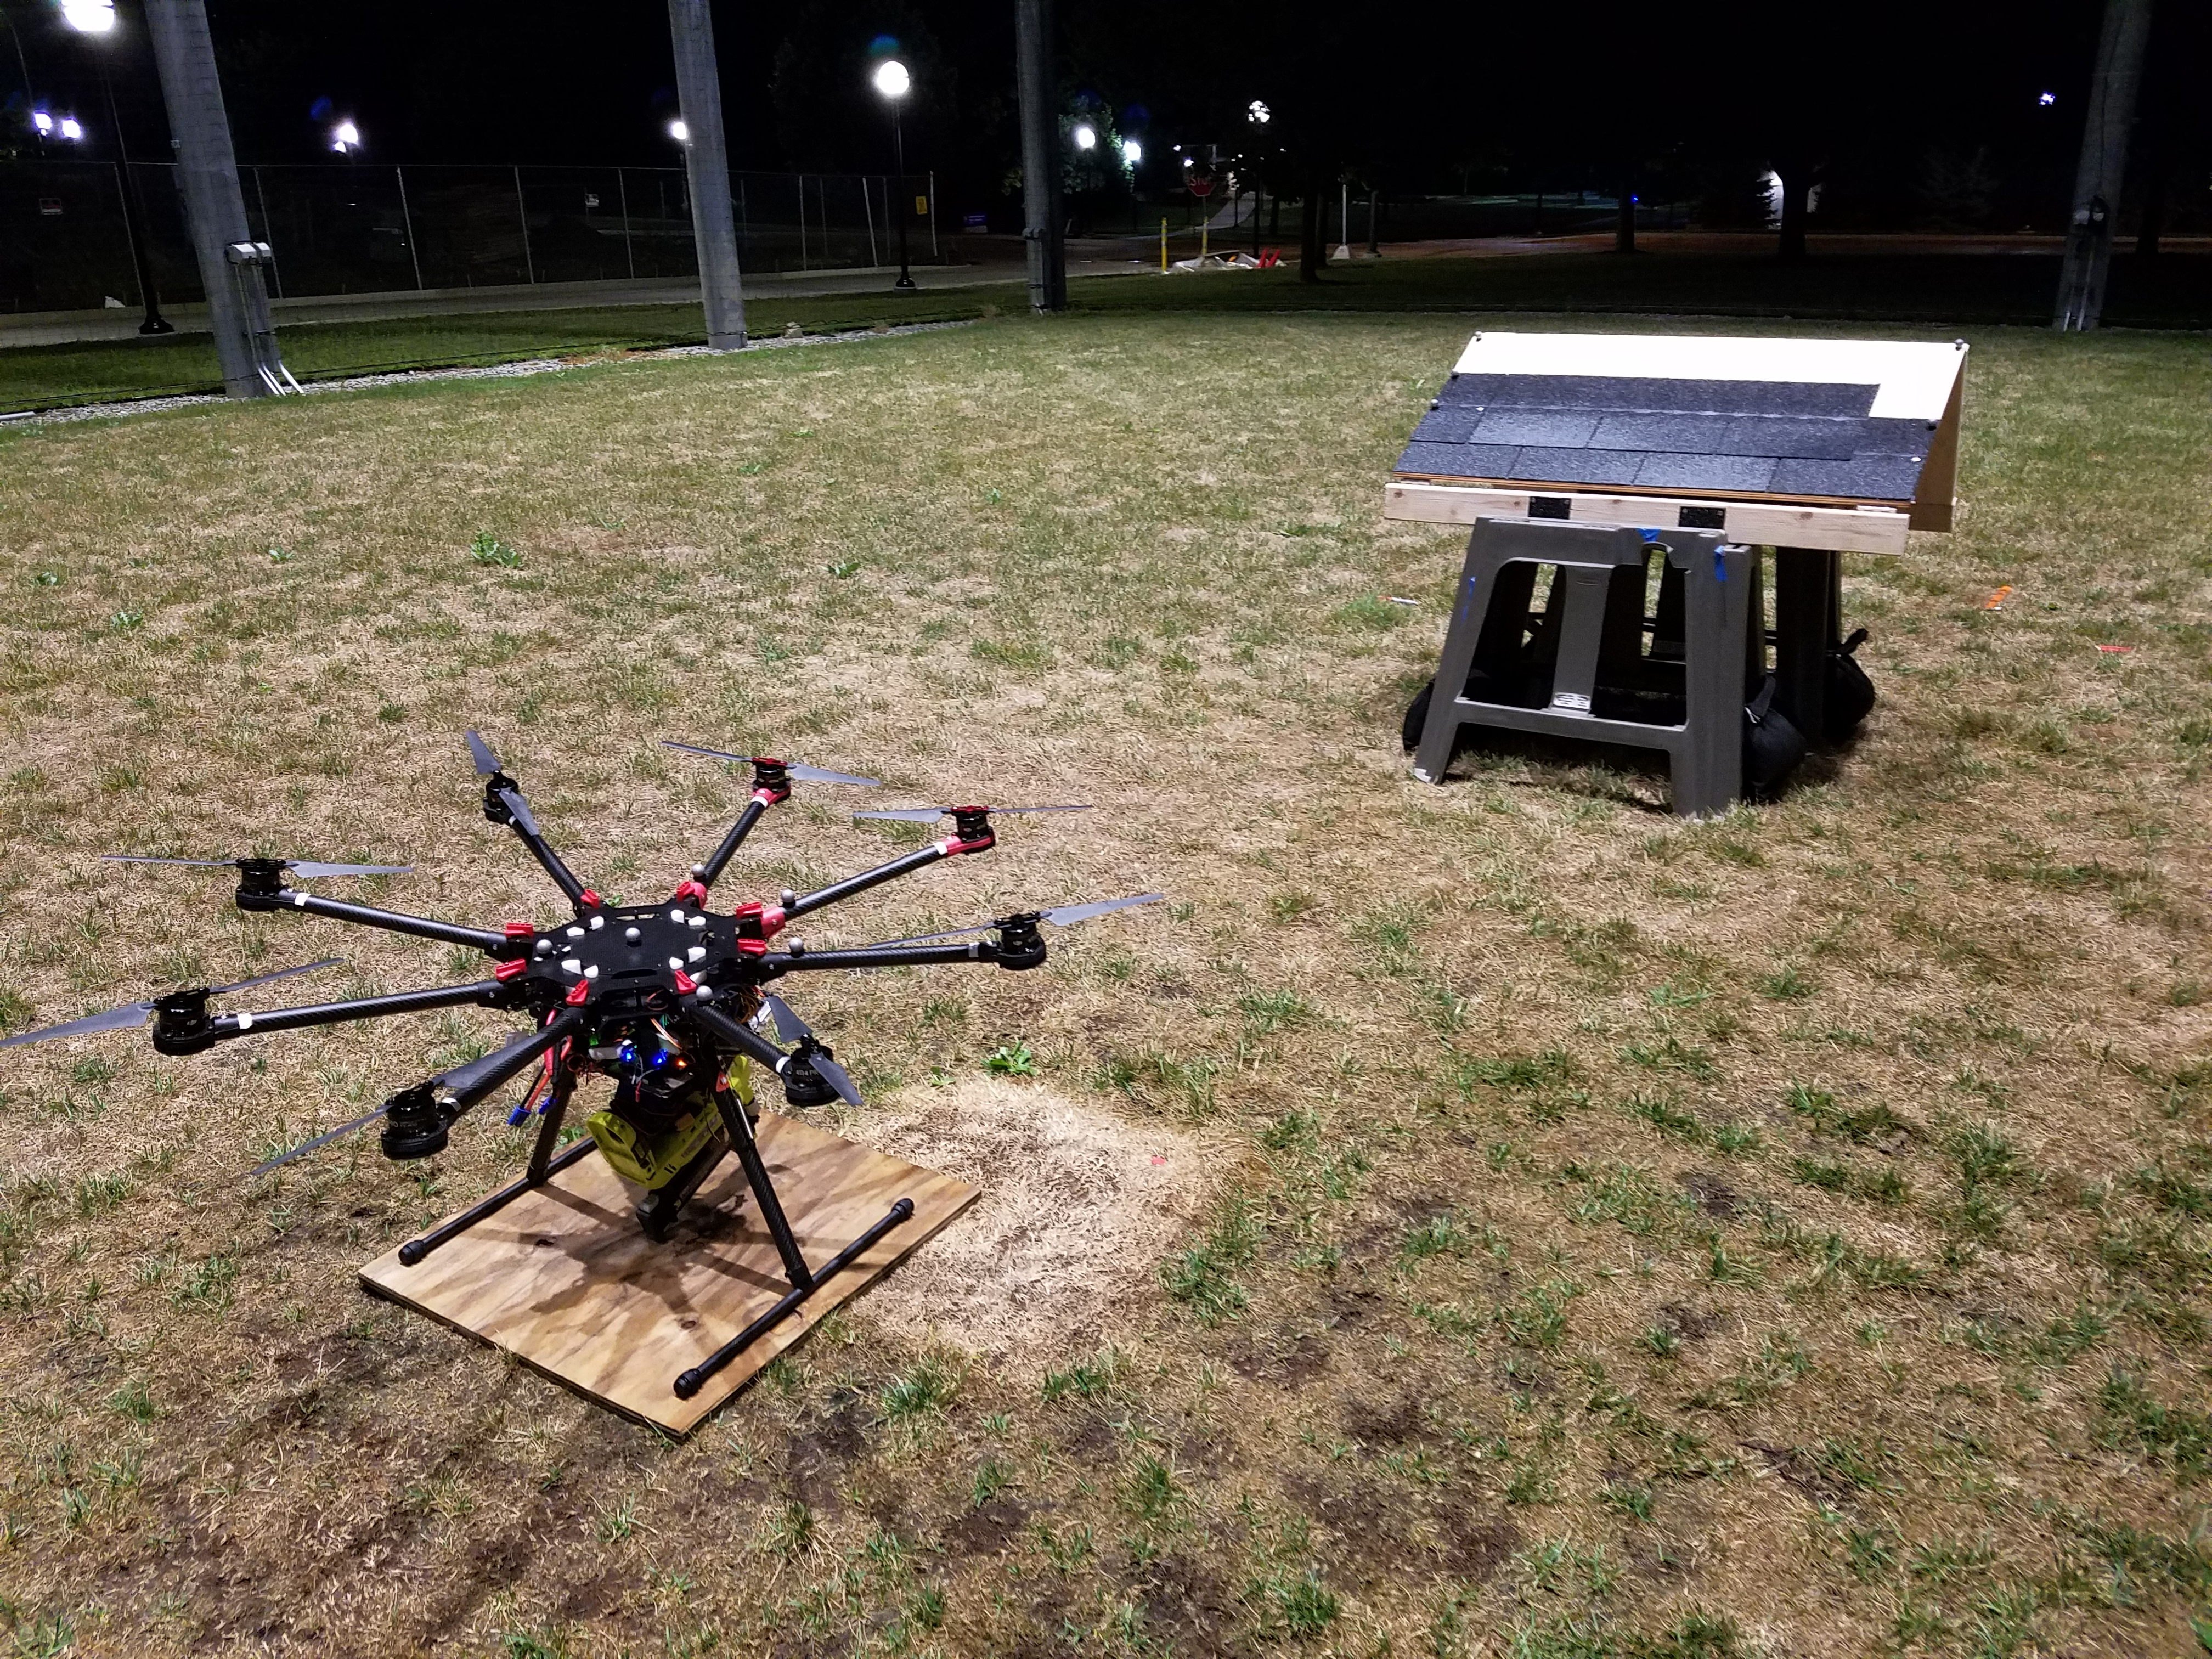 The roofing octocopter, equipped with a nail gun, is parked near the mock roof. By setting the wooden panel at different inclines, the researchers simulated roofs with different slopes. Image credit: Matthew Romano, Michigan Robotics